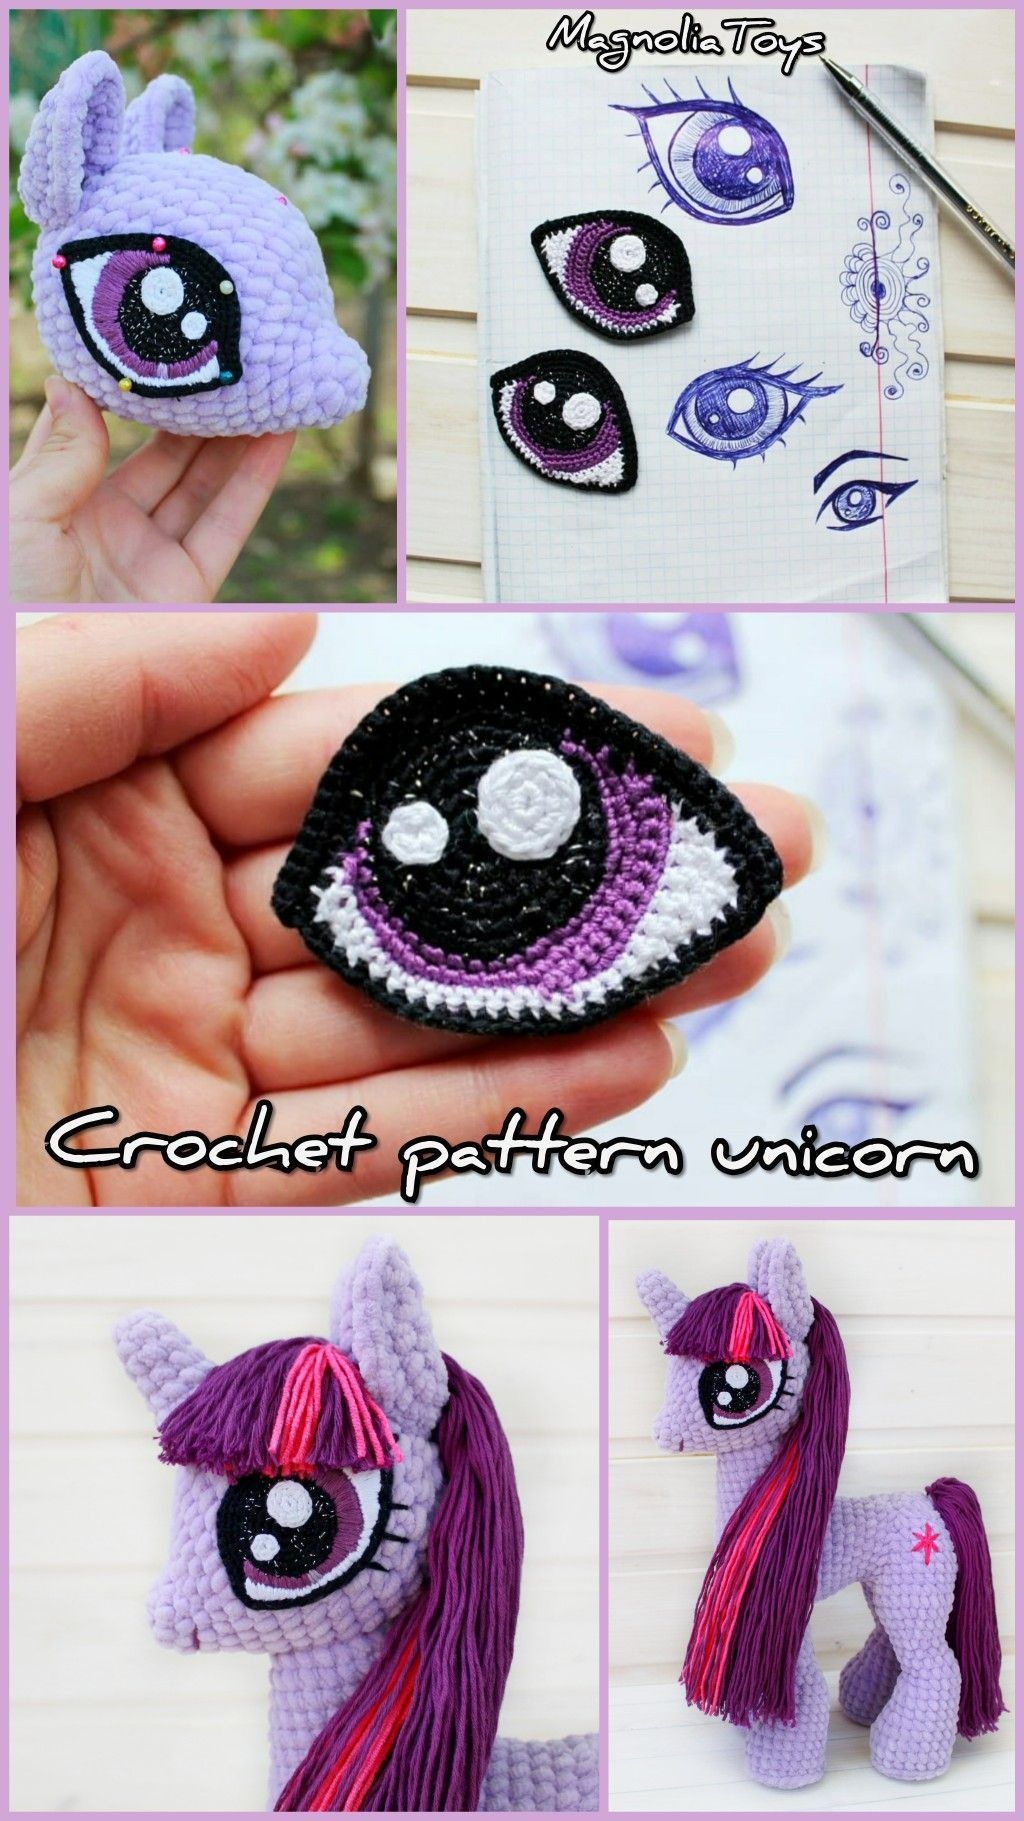 Crochet unicorn, Amigurumi pattern, Alicorn Unicorn soft toy My little pony plush Amigurumi unicorn doll Horse crochet Plush unicorn pattern Crochet unicorn, Amigurumi pattern, Alicorn Unicorn soft toy My little pony plush Amigurumi unicorn doll Horse crochet Plush unicorn pattern PLEASE NOTE: THE LISTING IS A PDF INSTANT DOWNLOAD CROCHET PATTERN, NOT A FINISHED PRODUCT This is an 60 pages PDF pattern (with step by step photos) - Available in English (US terms)  This pattern is suitable for thos #littleunicorn